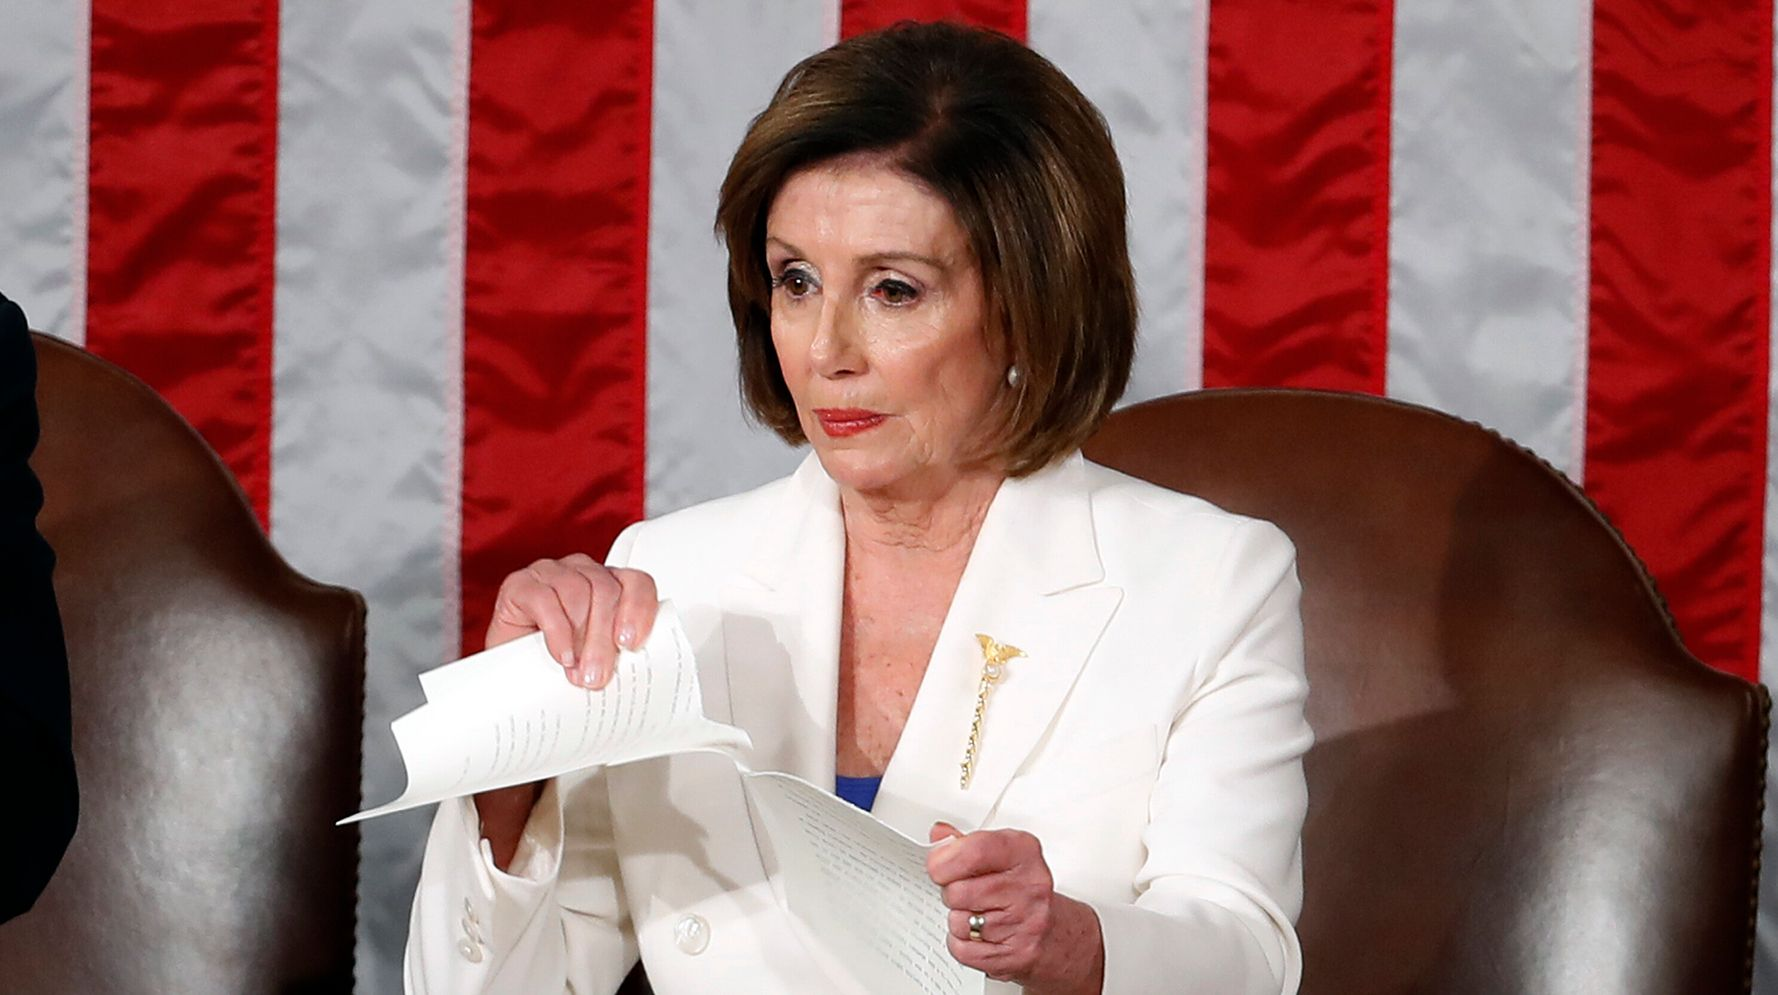 A Frustrated Nancy Pelosi Rips Up Trumps State of the Union Speech!